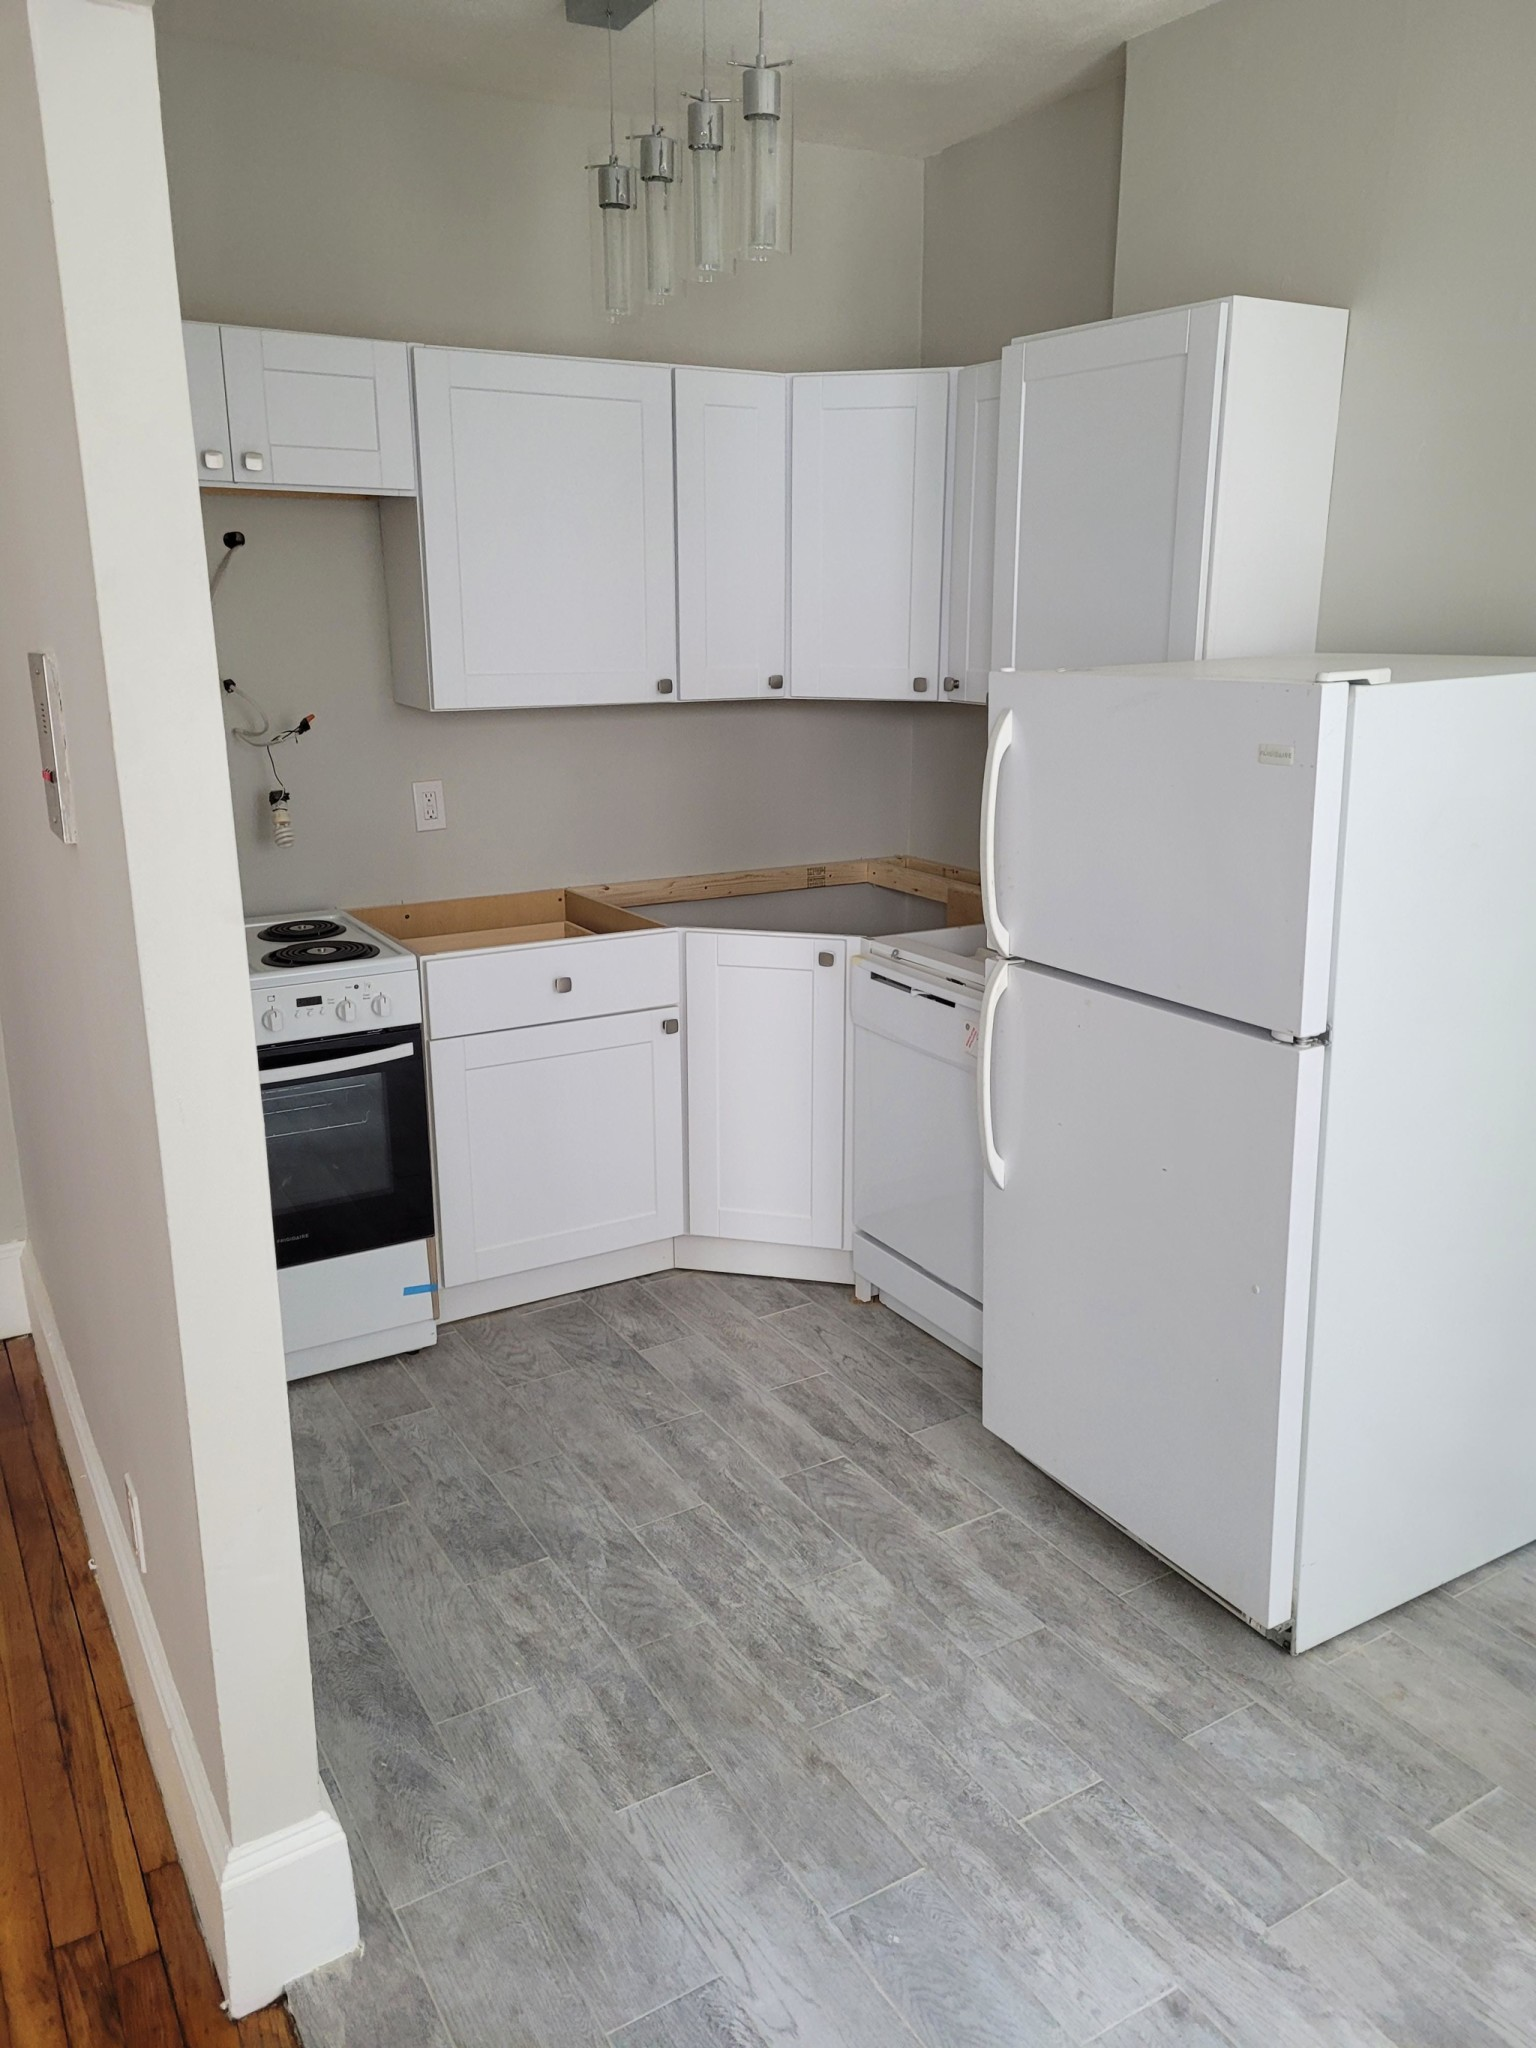 1 Bed, 1 Bath apartment in Boston, Allston for $1,920